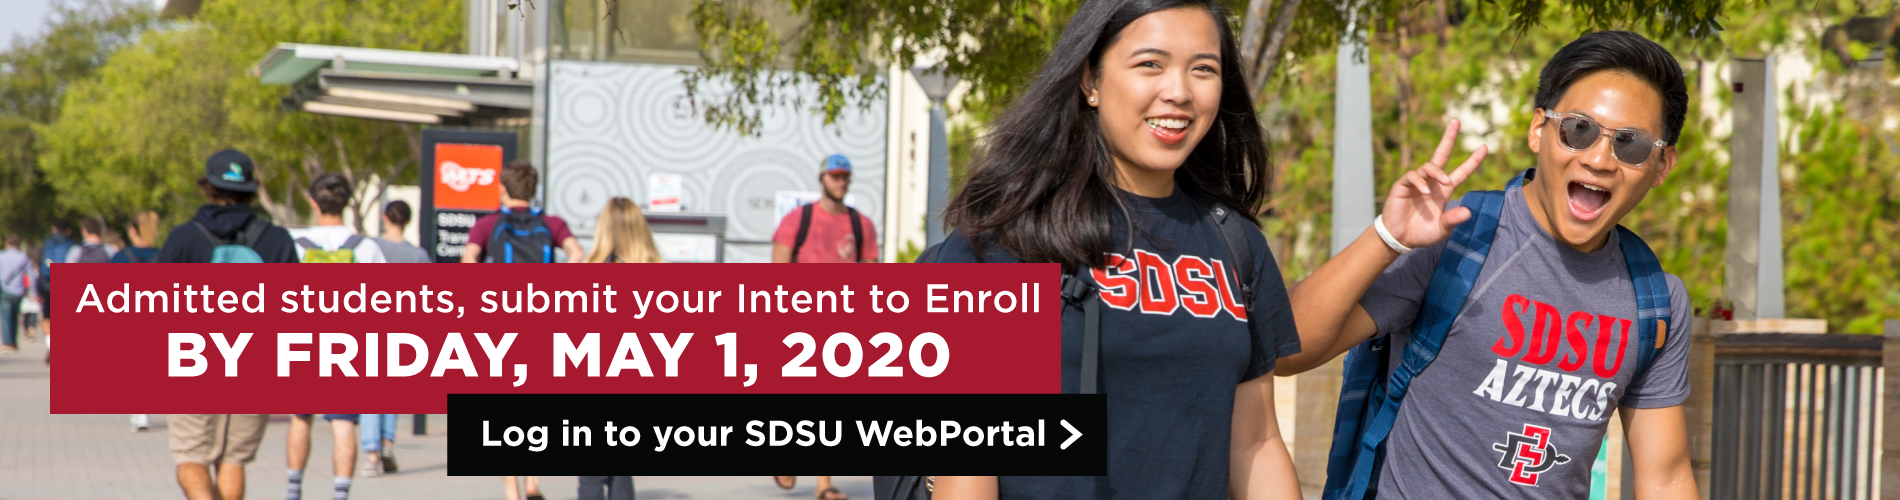 Admitted students, submit your intent to enroll by Friday, May 1, 2020. Log into your SDSU WebPortal